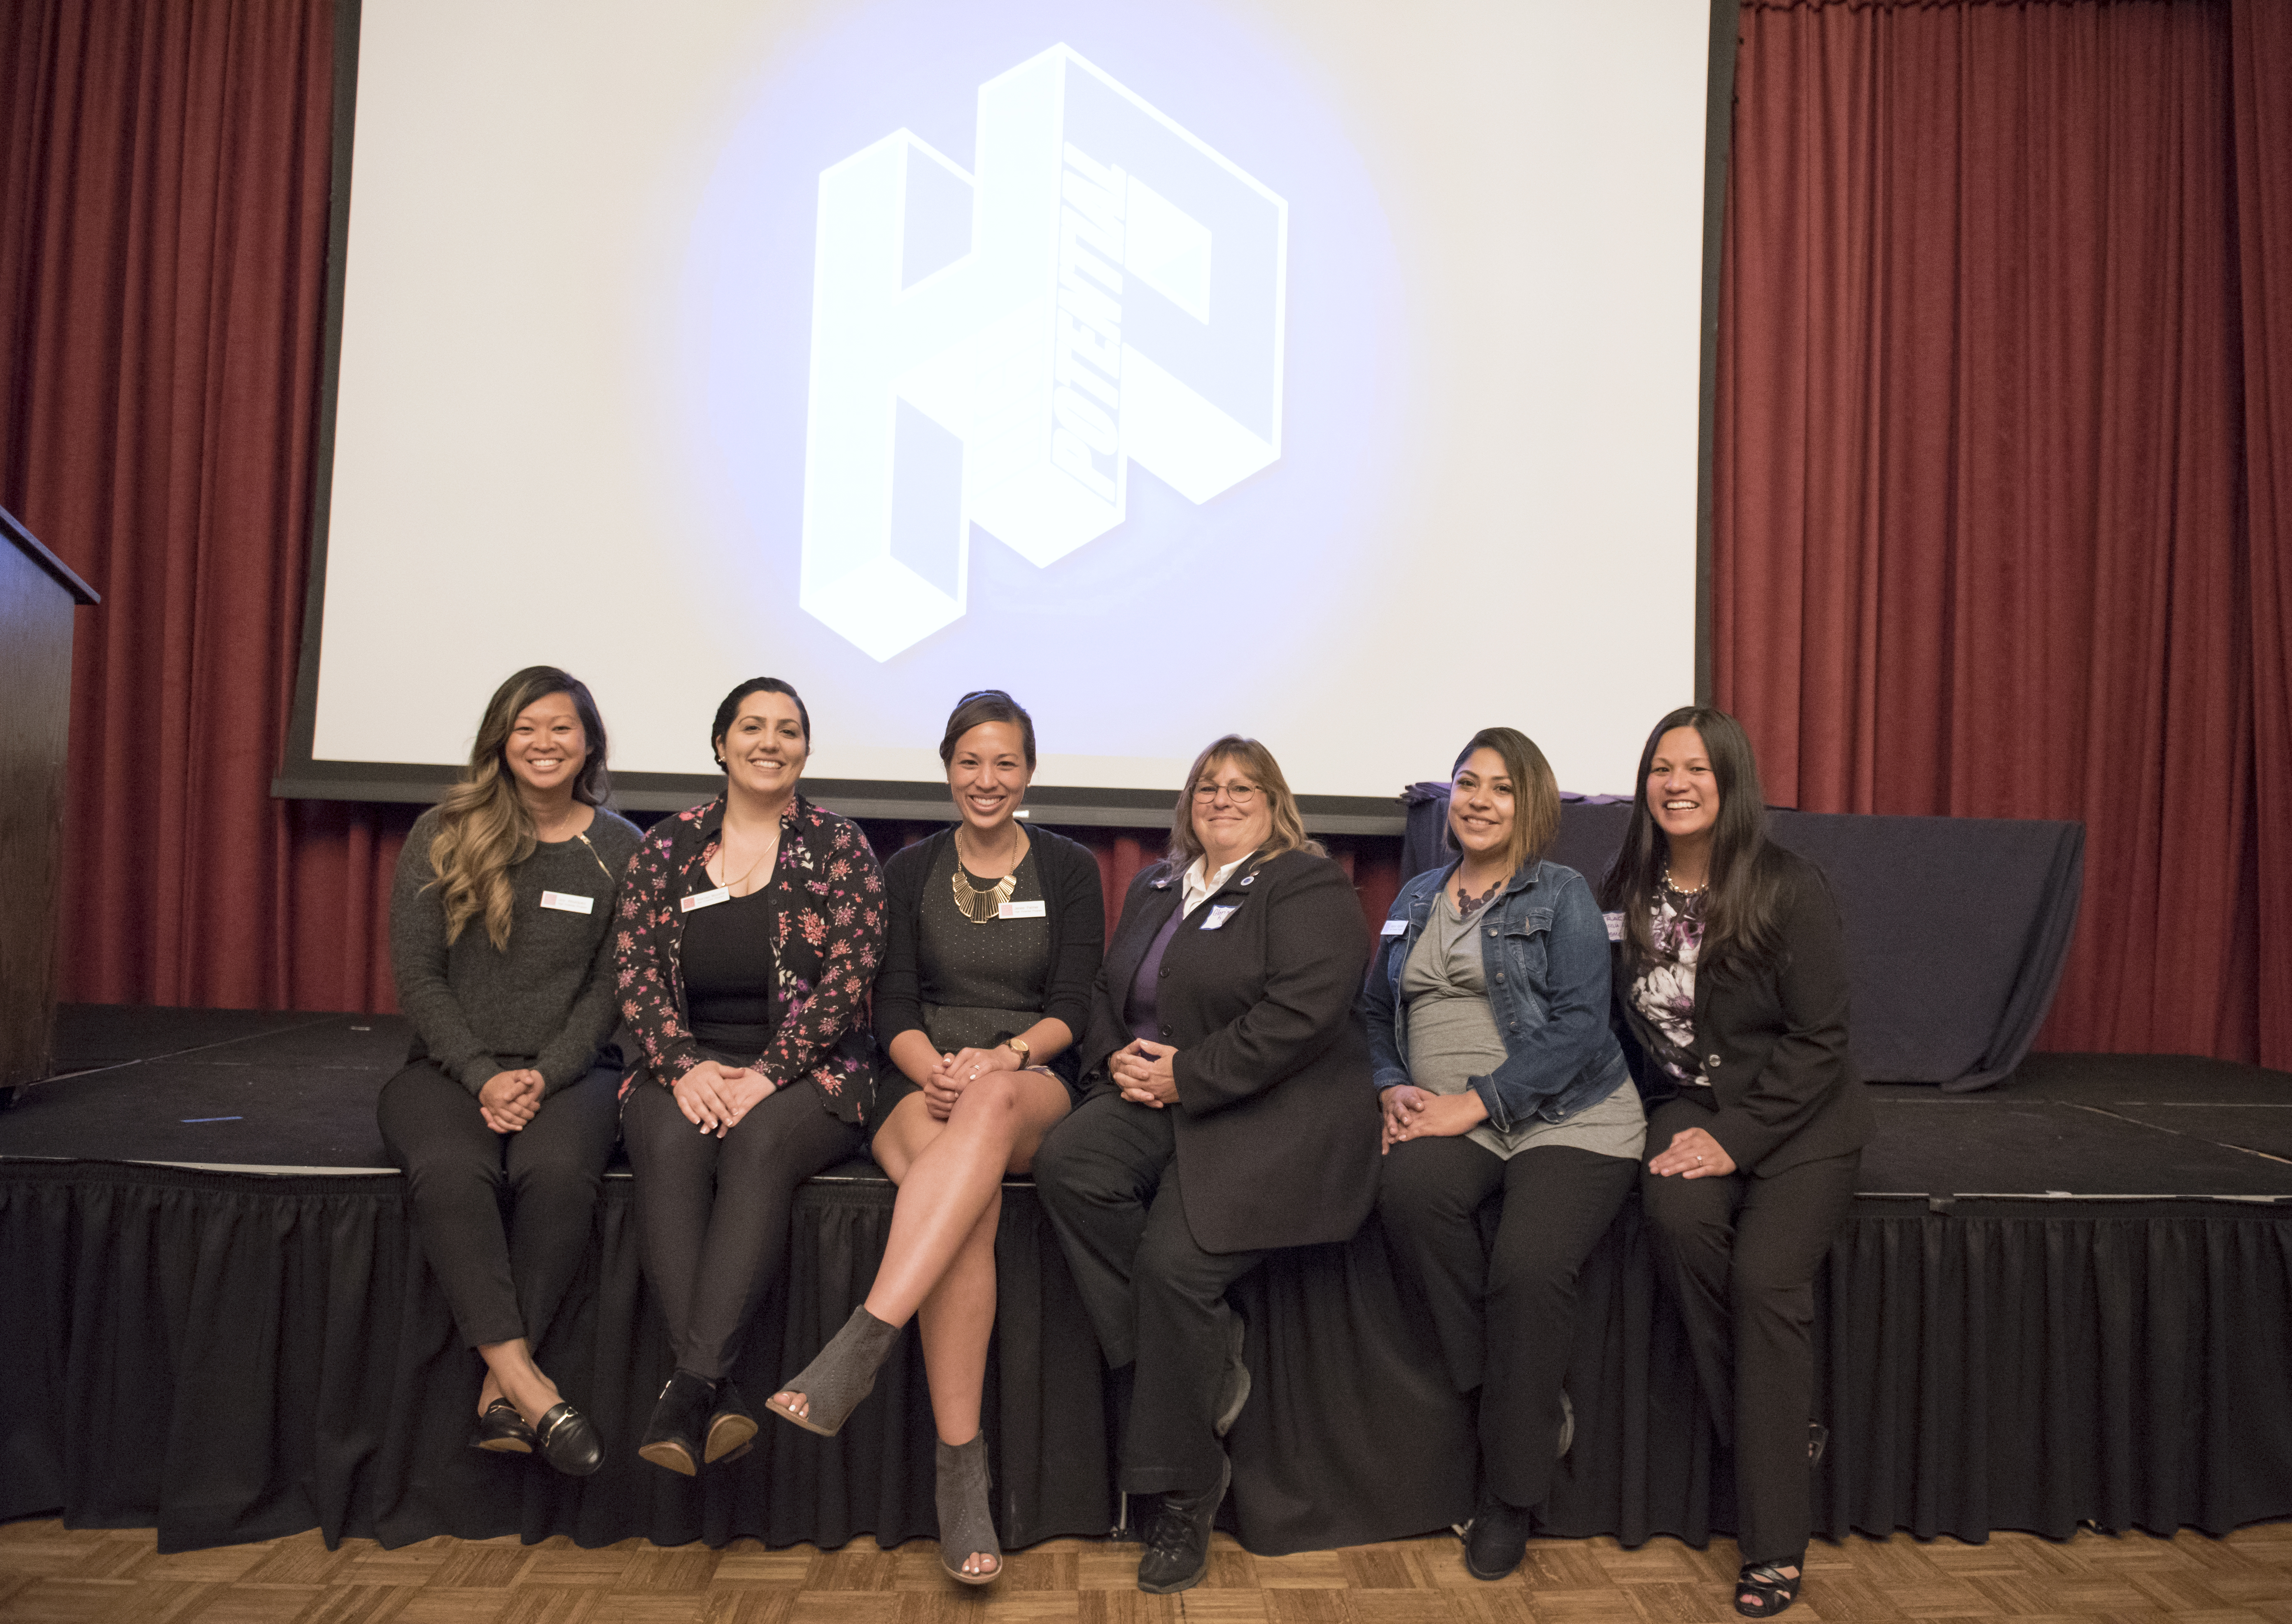 The High Potential Program Team (from left): HP Coach/Graduate Intern Joy Aburquez; HP Coach/Peer Mentor Coordinator Sharzad Mozaffar; Director, HP and TRIO Student Support Services Jenee Palmer;  Chief Diversity Officer, Faculty Co-Director, HP, Department Chair, Counseling Department Gloria Aquino Sosa, PhD;  HP Coach/Graduate Intern Nancy Aguilar;  Assistant Vice Provost for Student Success Tracy Pascua Dea, PhD.